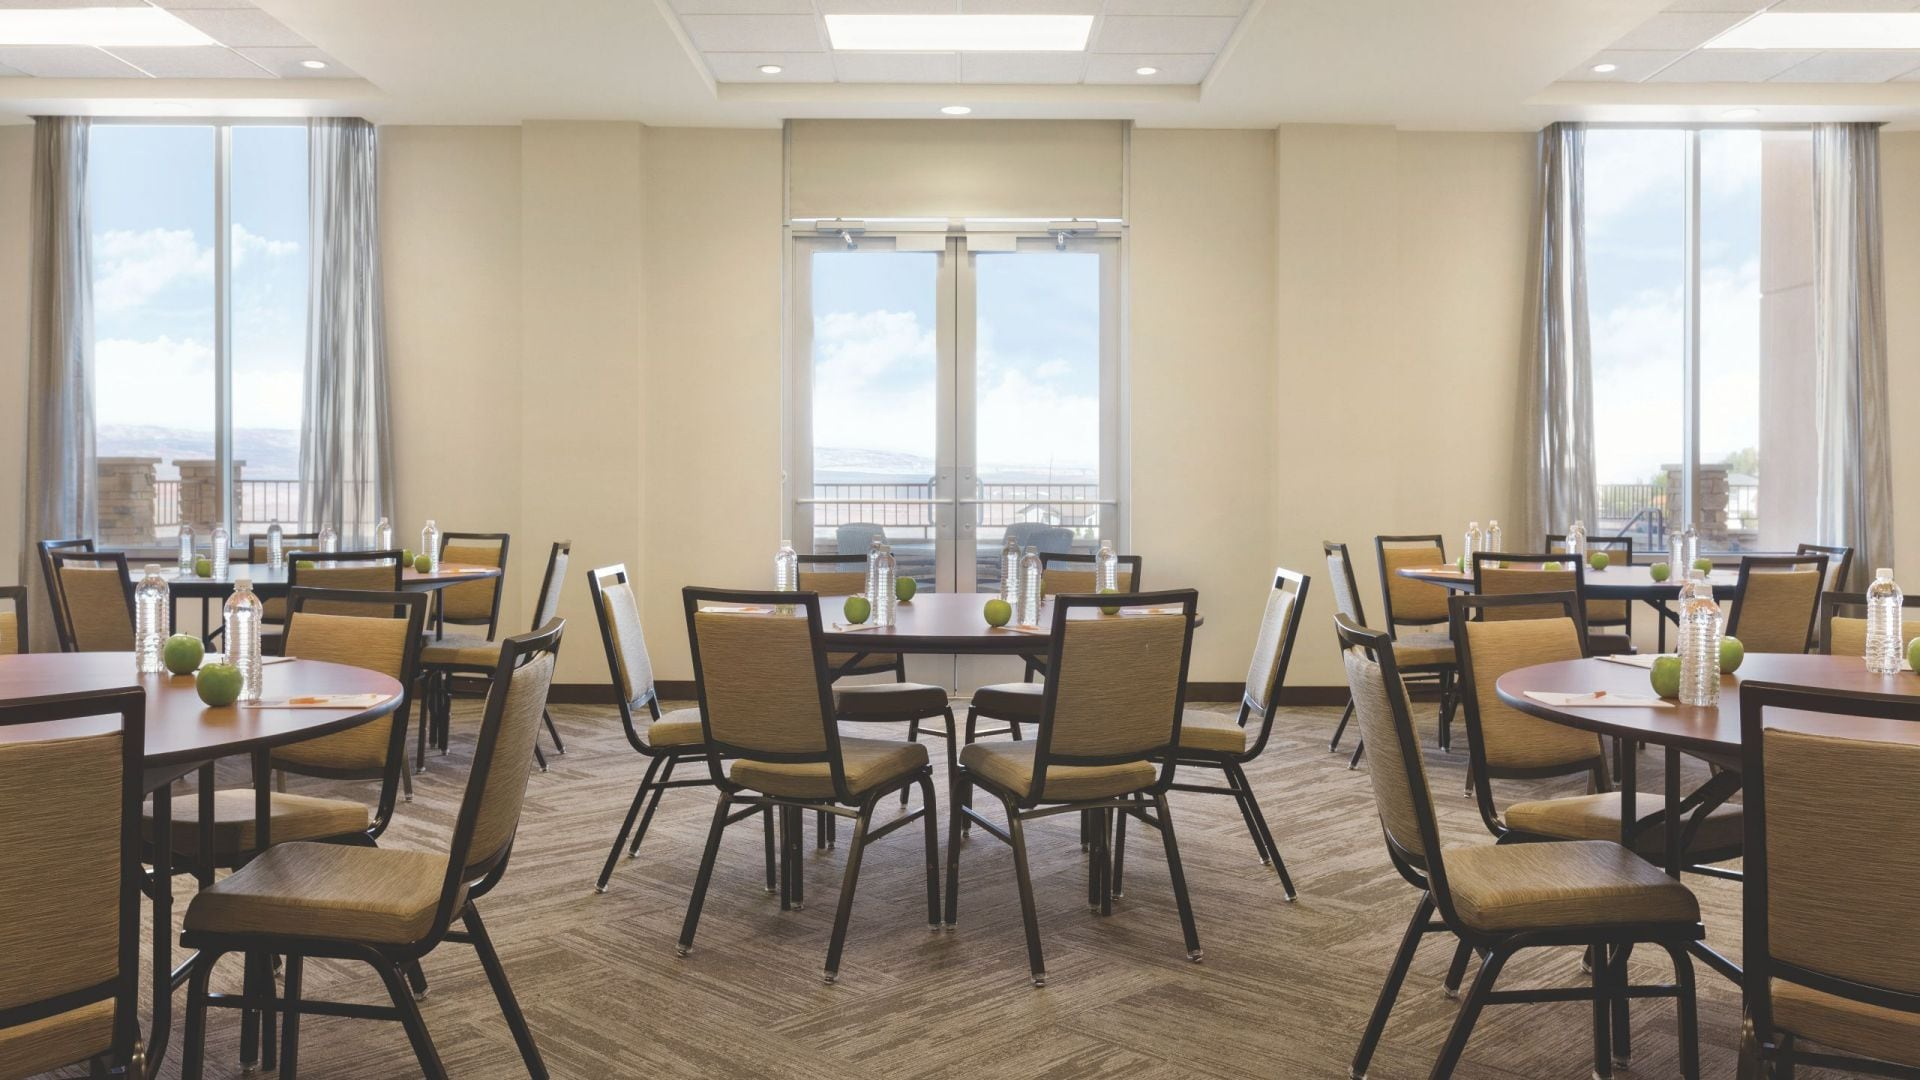 Meeting space with round tables